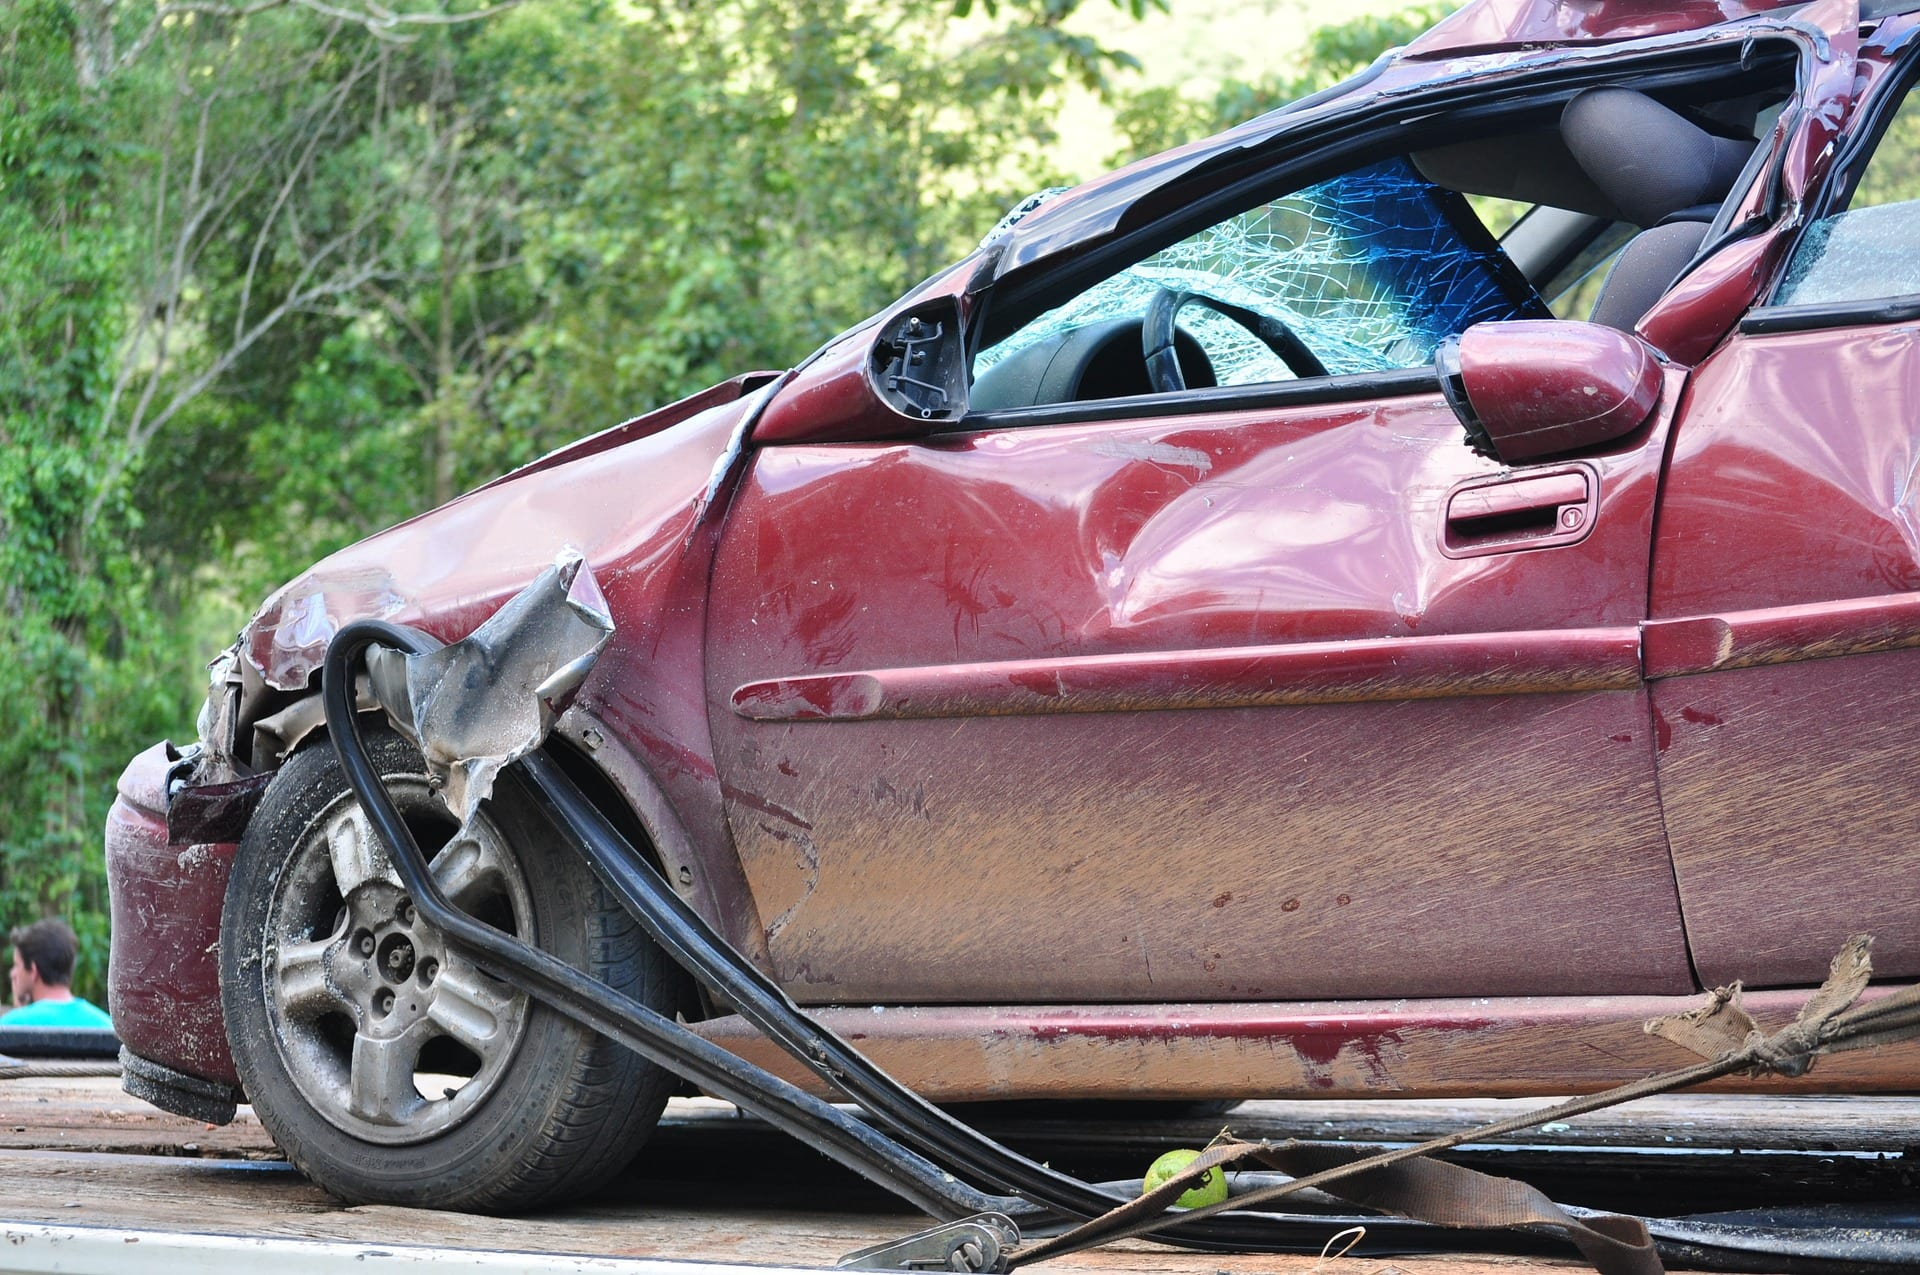 Maroon car badly damaged in auto accident; image by NettoFiguiredo, via Pixabay.com.